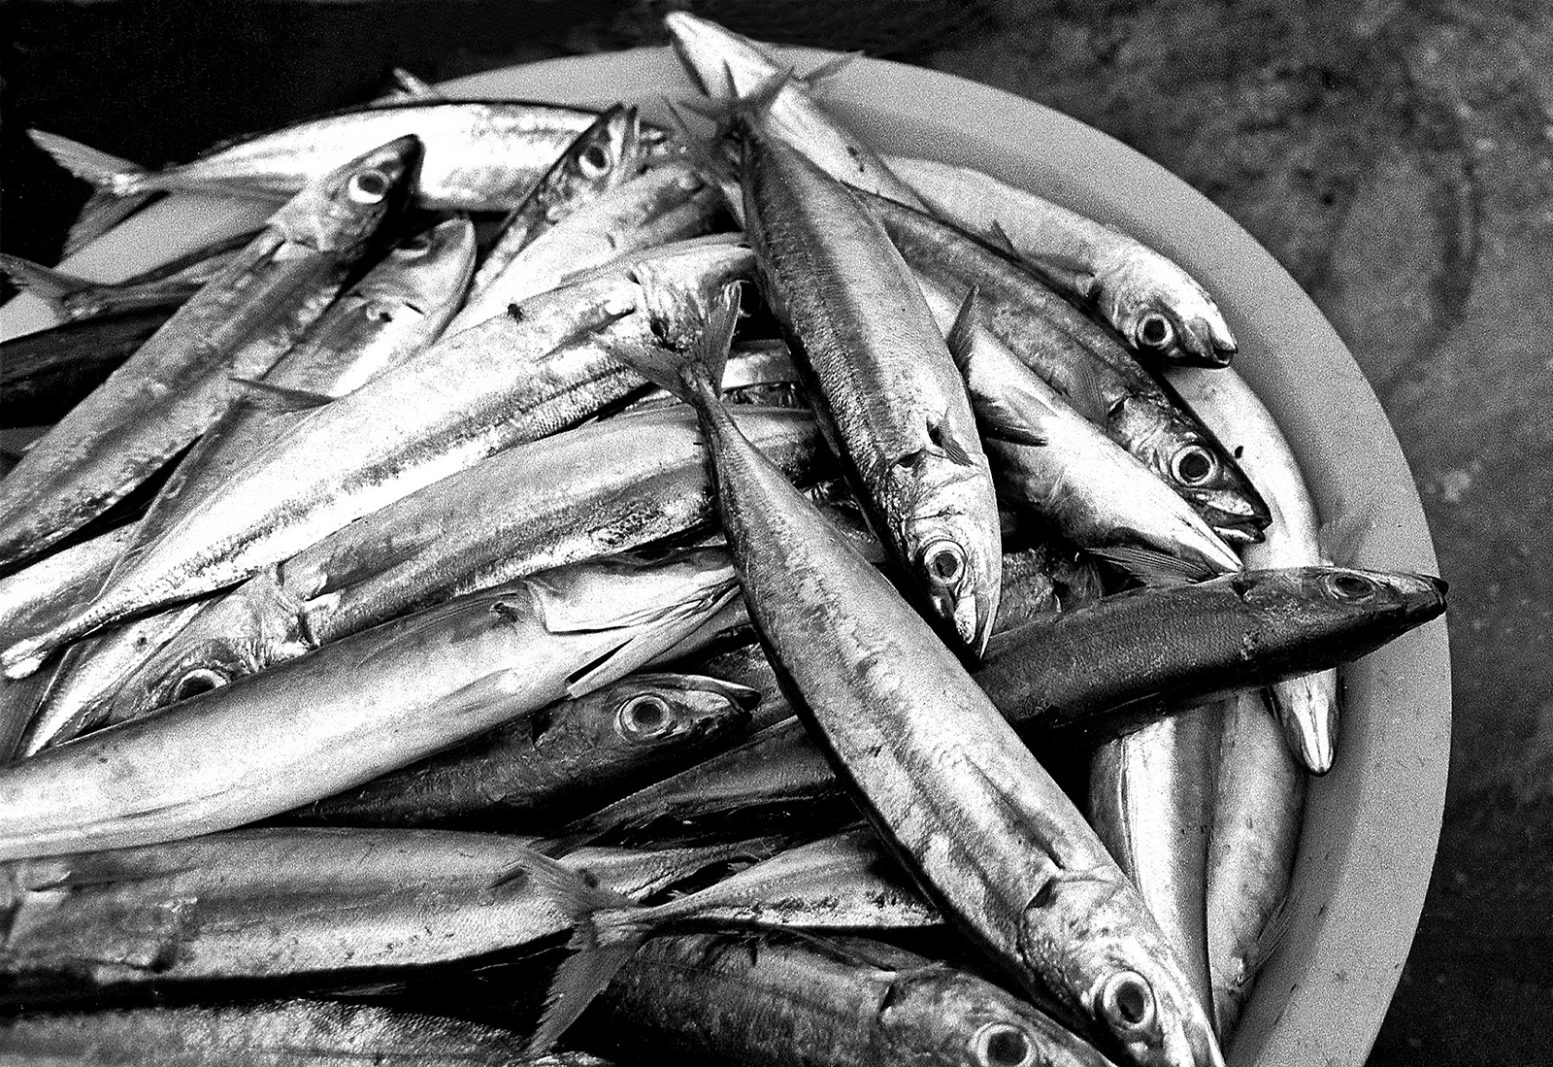 Basket full of mackerels for the market. Ponta do Sol, Santo Antao.